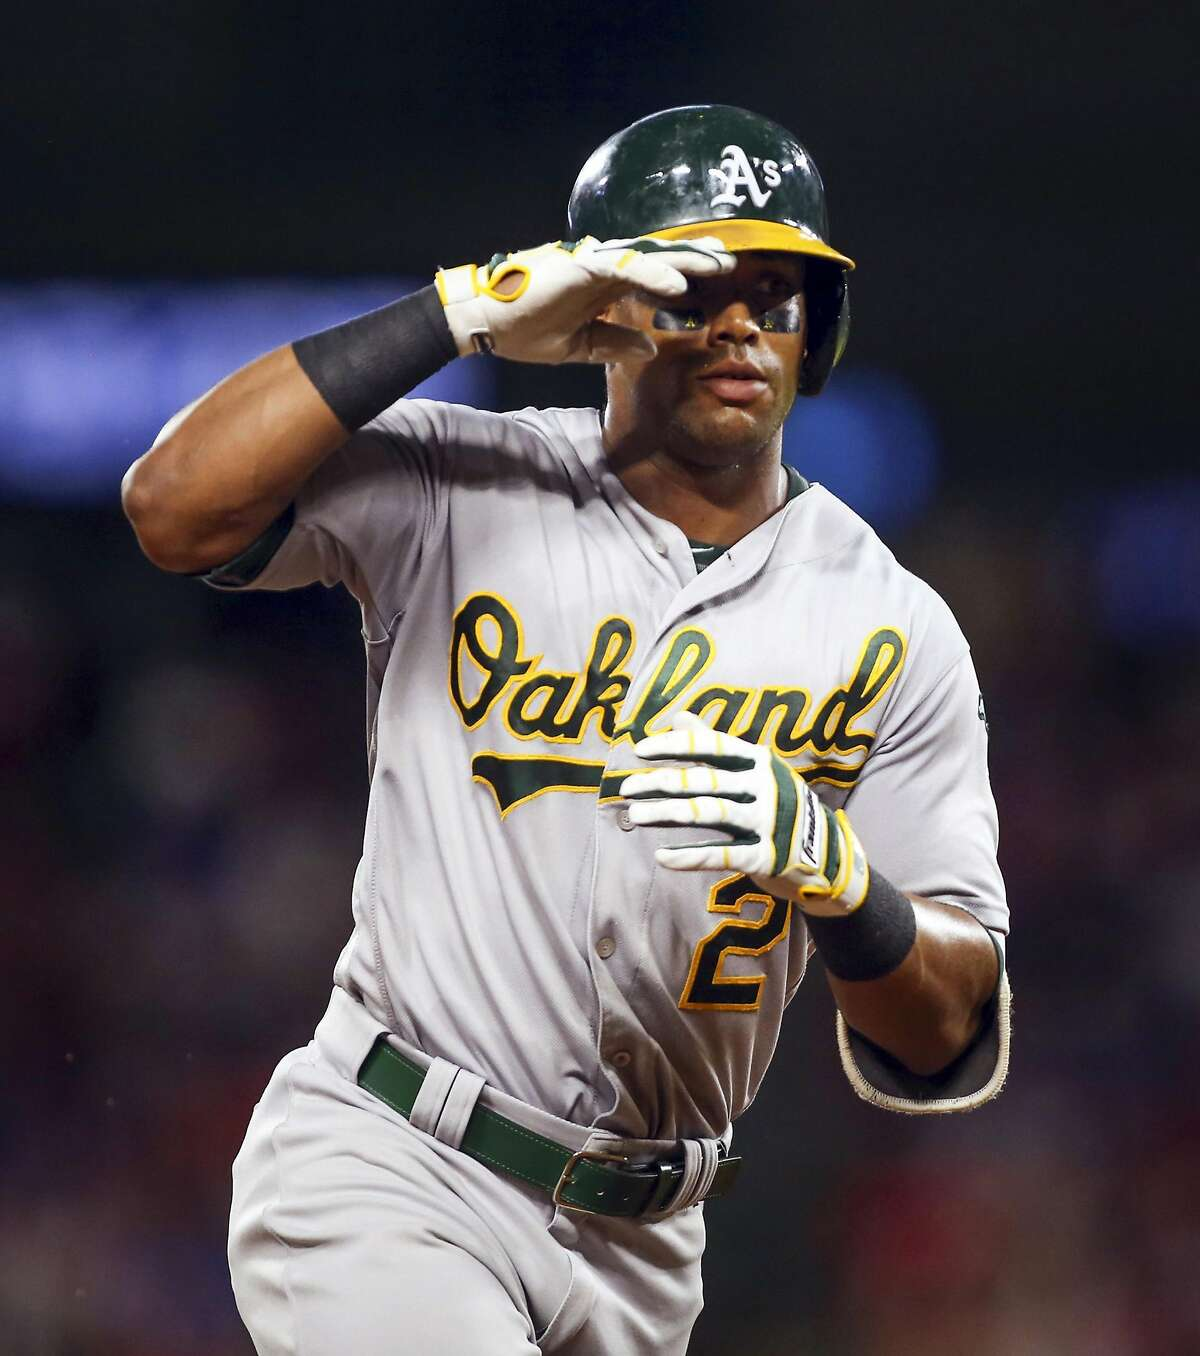 The Oakland Athletics' Khris Davis salutes the dugout as he rounds third base after a two-run home run in the fourth inning against the Texas Rangers at Globe Life Park in Arlington, Texas, on Friday, Sept., 16, 2016. (Richard W. Rodriguez/Fort Worth Star-Telegram/TNS)